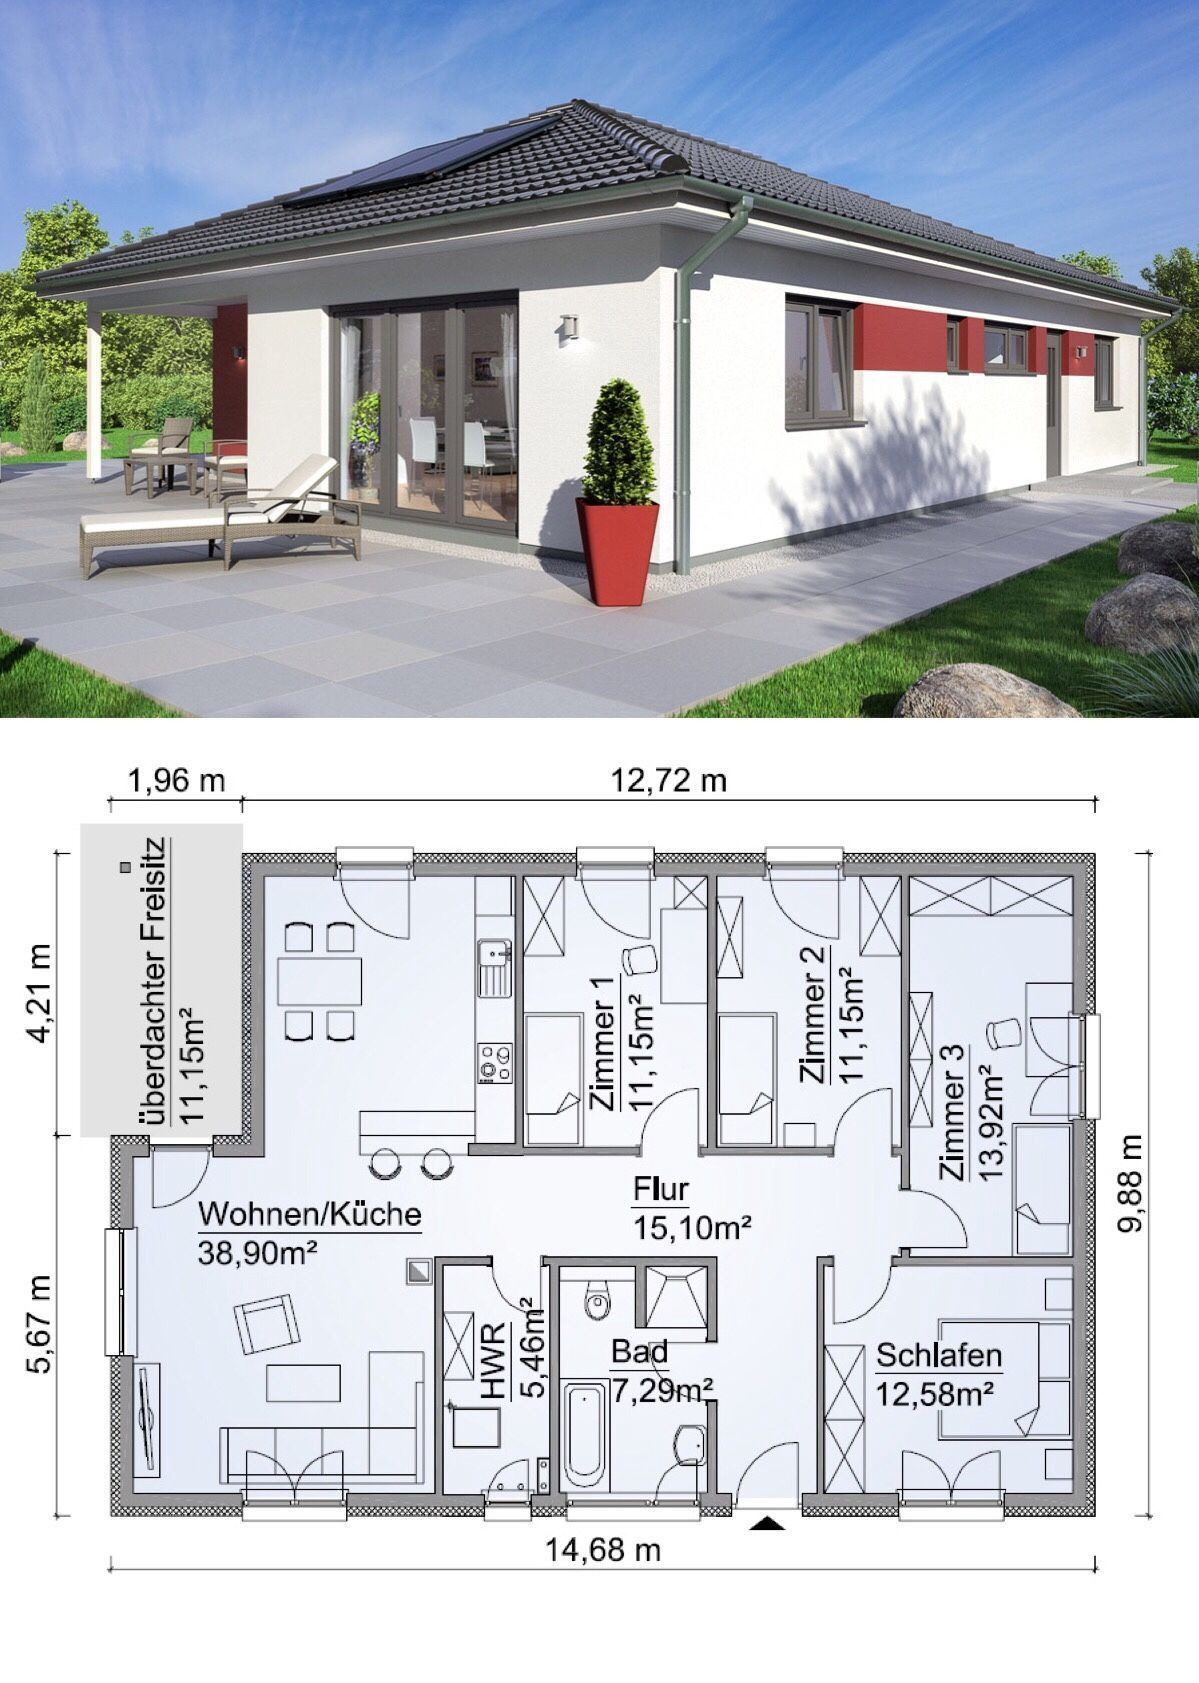 Architect House Plans Free Elegant Bungalow House with Hipped Roof Architecture & 5 Rooms Floor